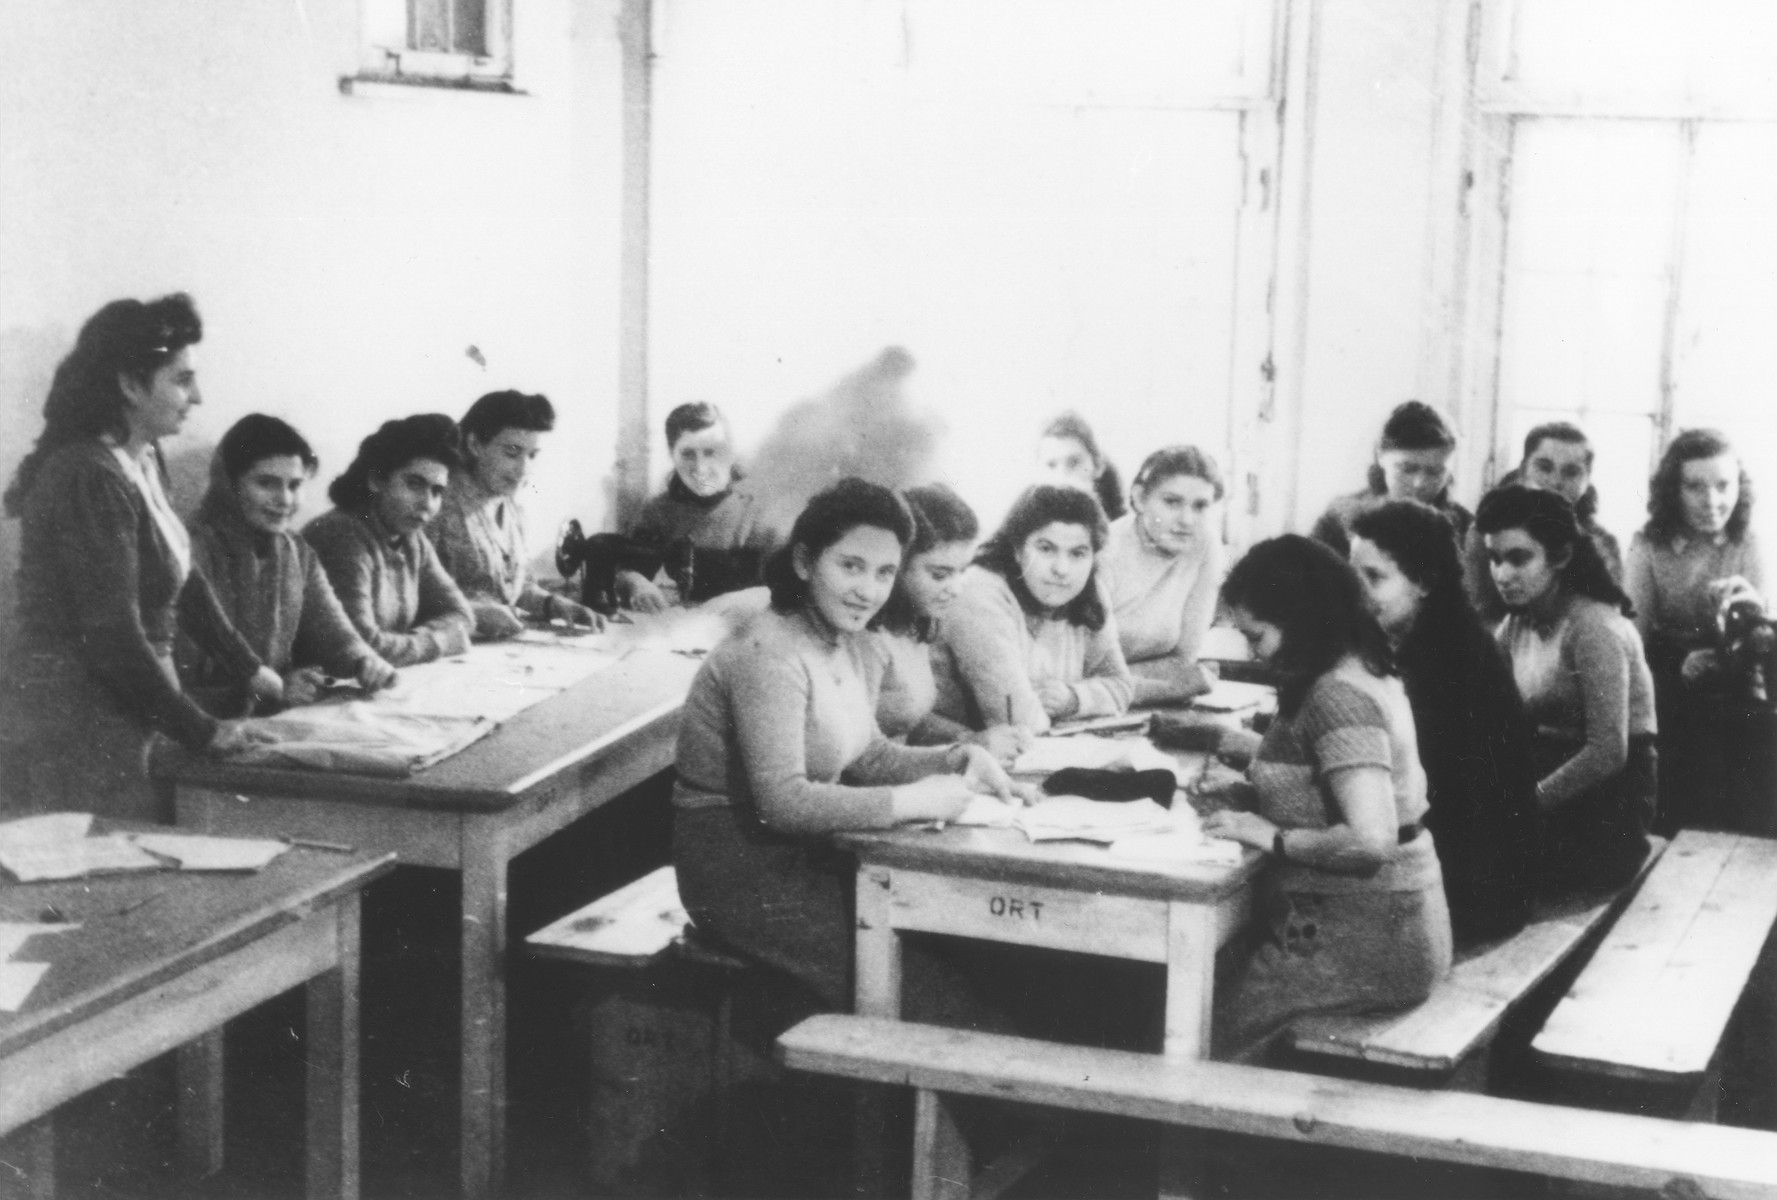 Young women attend a sewing class at the ORT school in the Schauenstein displaced persons camp for children.